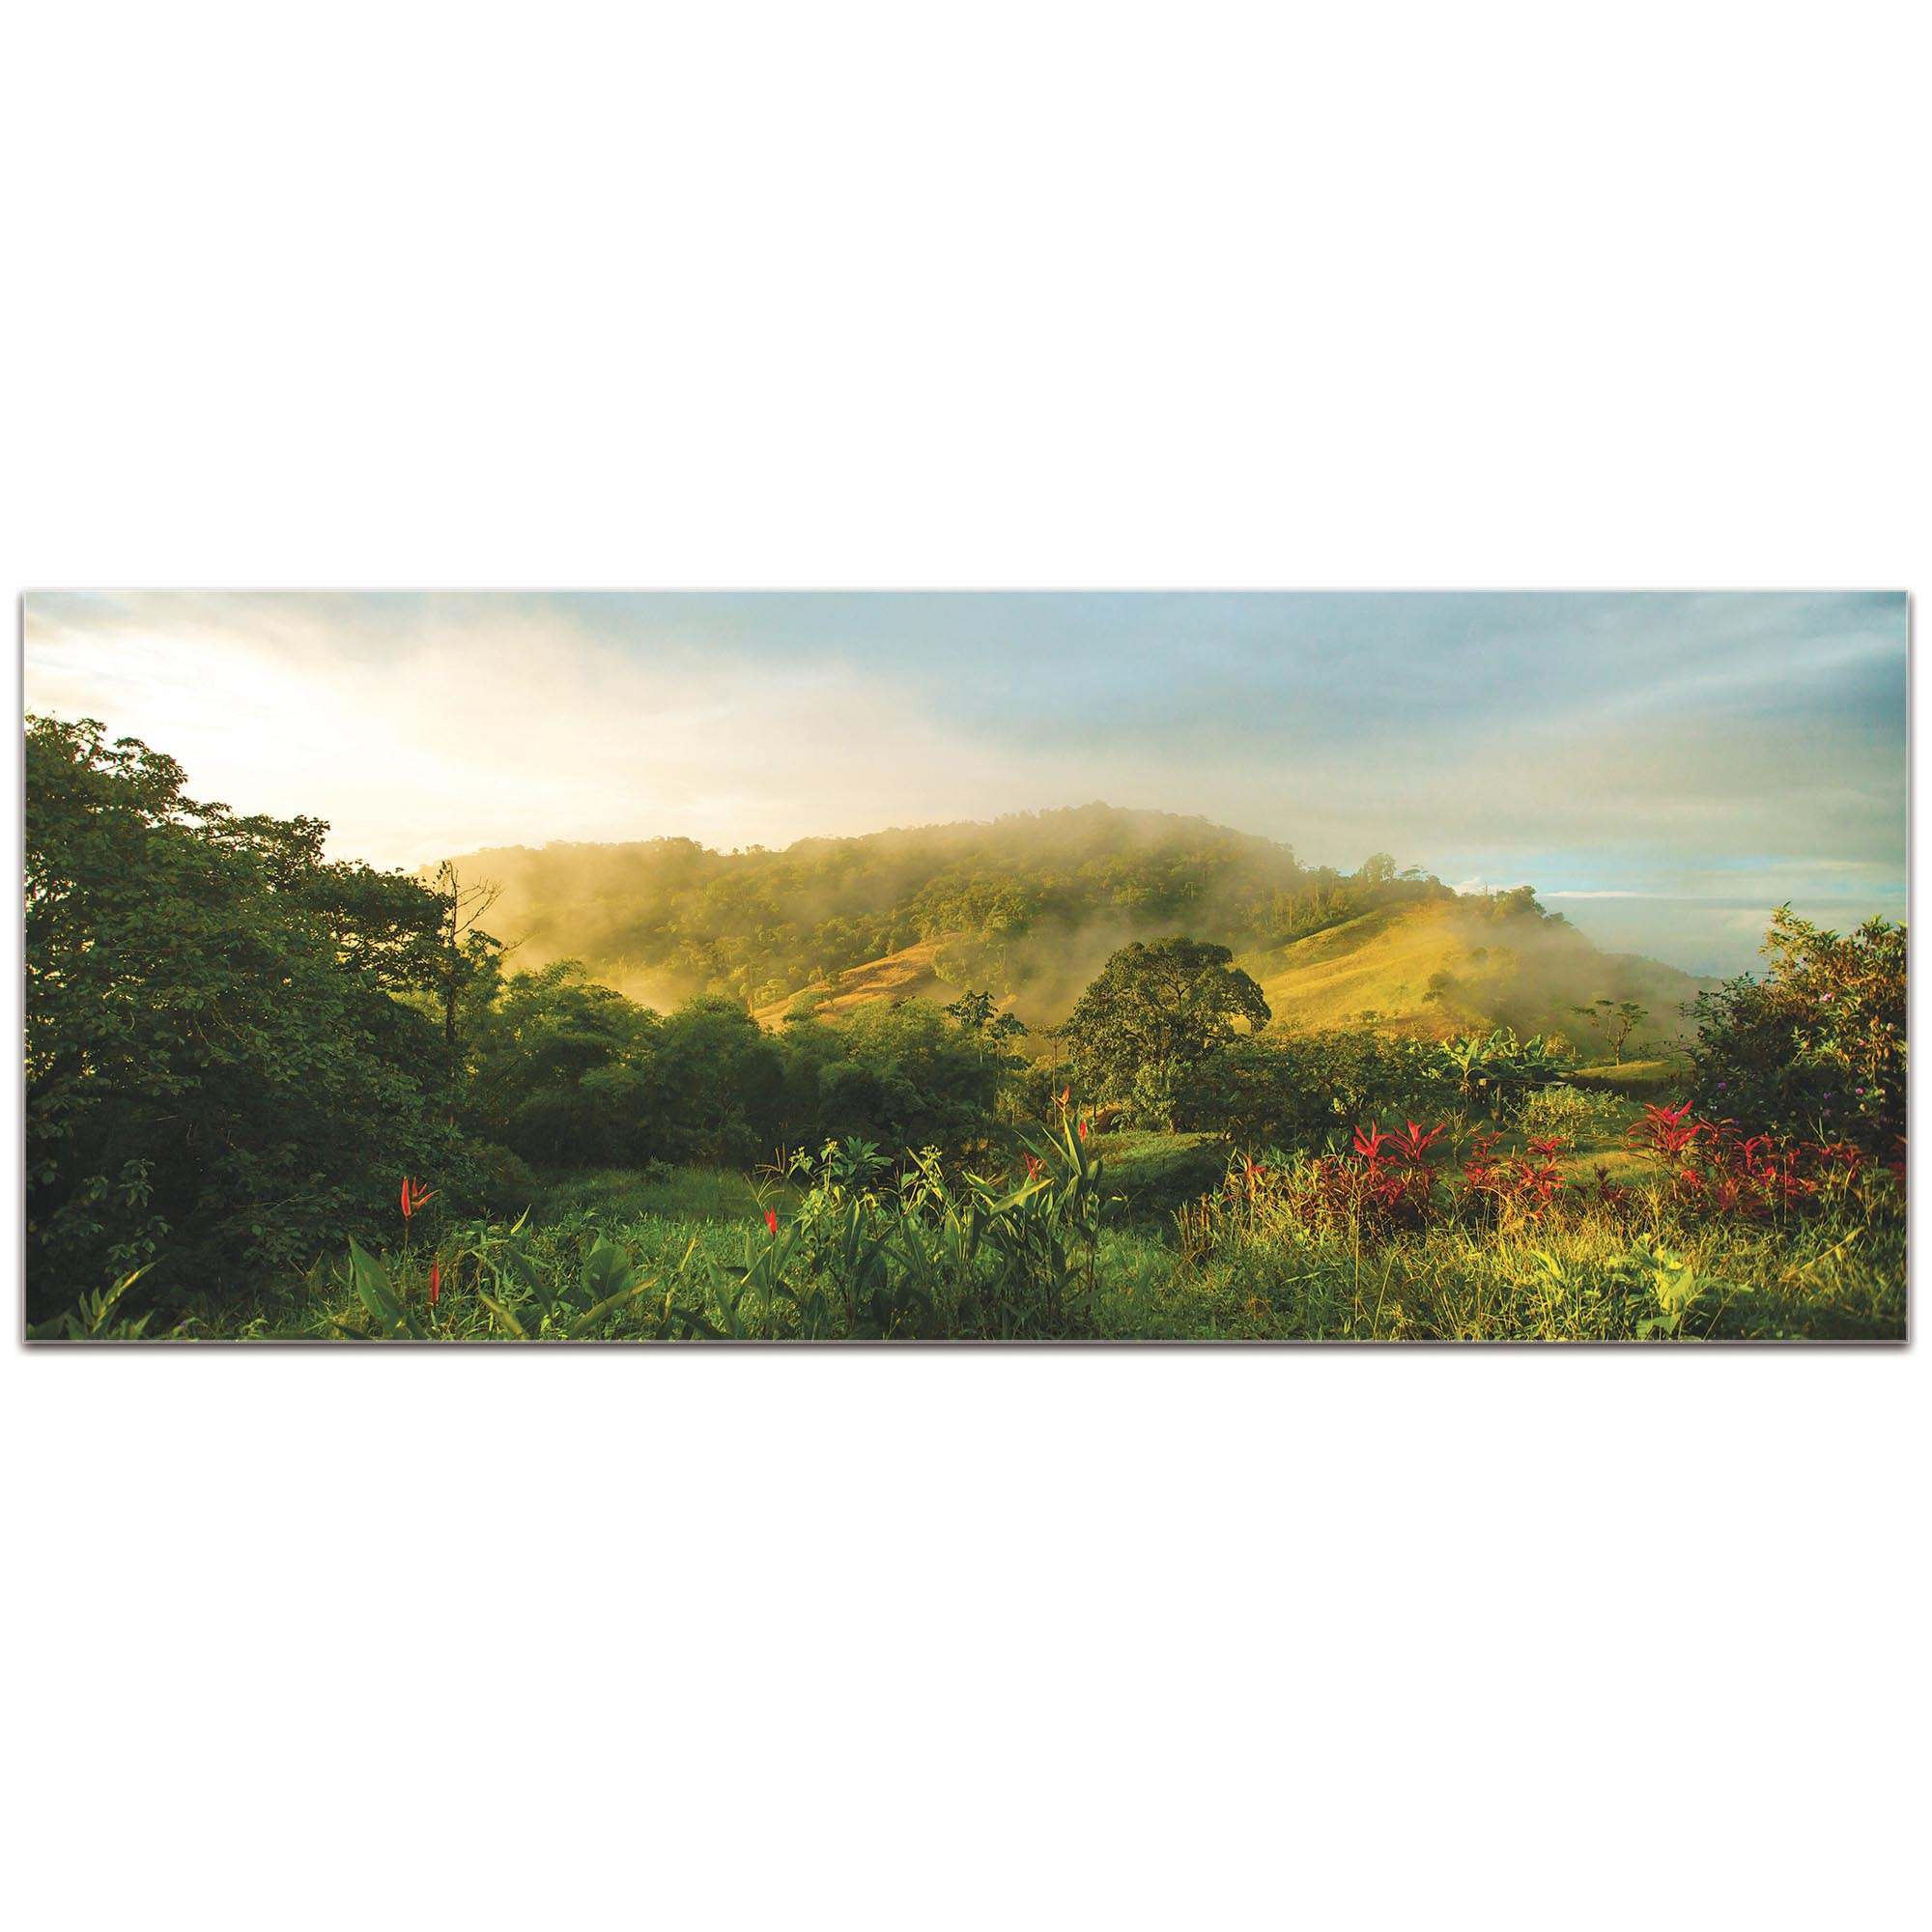 Landscape Photography 'Storybook Hills' - Mountain Scene Art on Metal or Plexiglass - Image 2